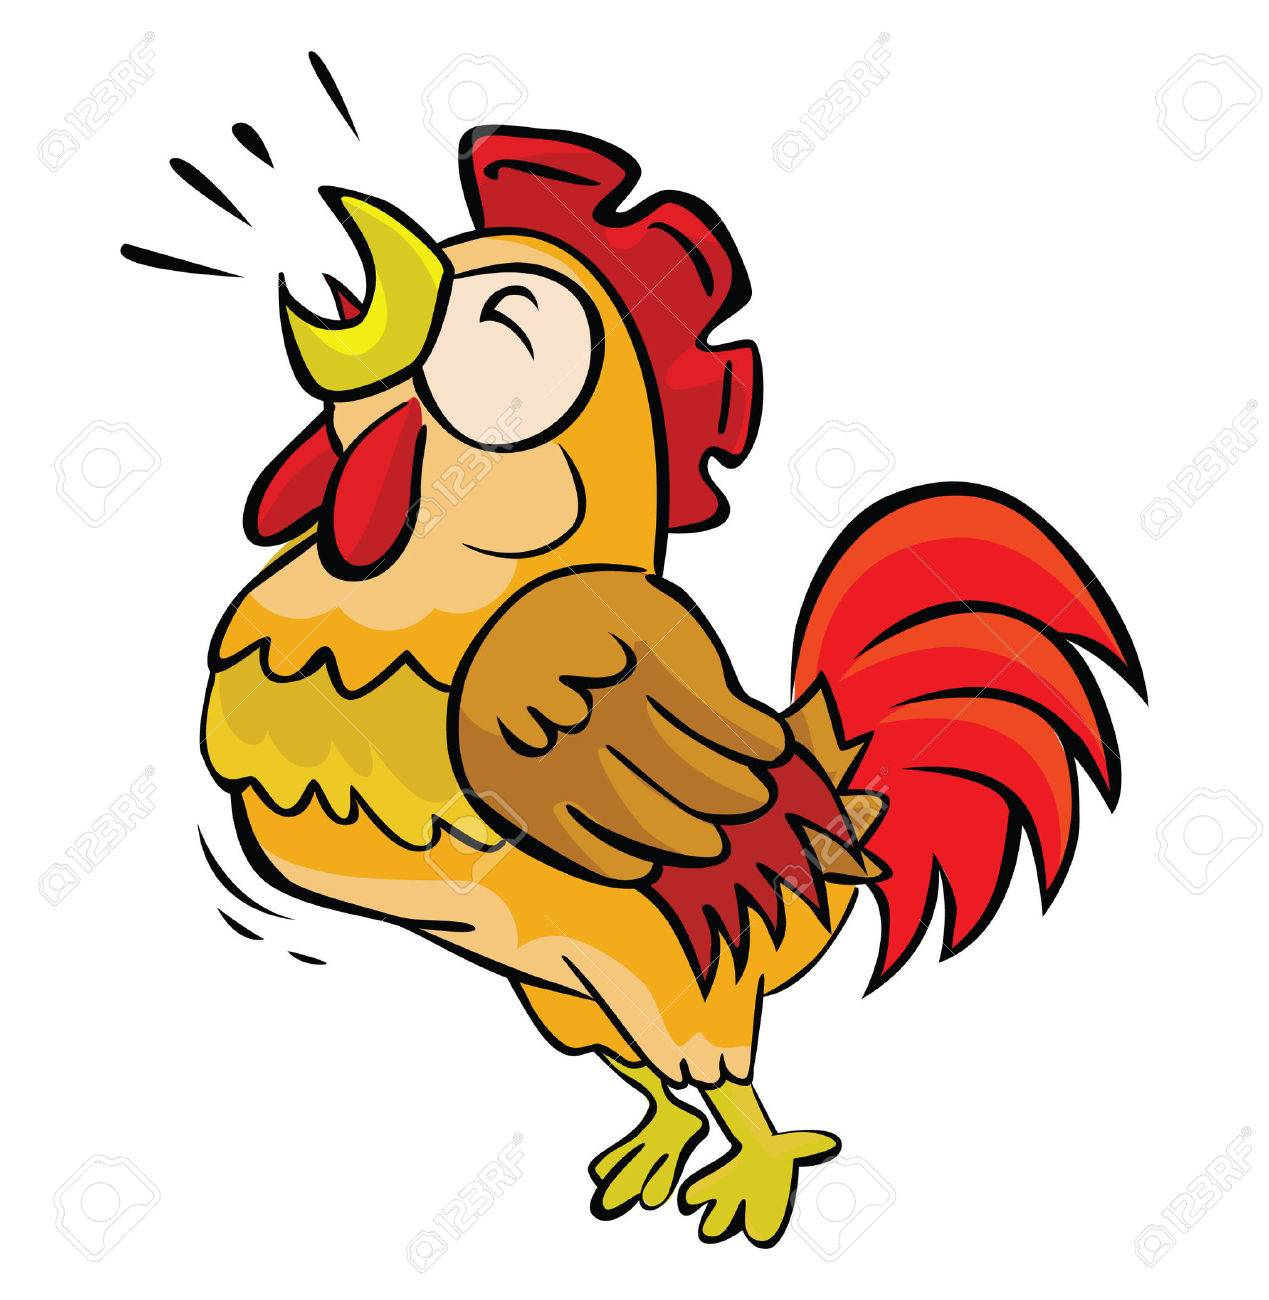 rooster crow royalty free cliparts vectors and stock illustration rh 123rf com rooster clipart png rooster clipart images